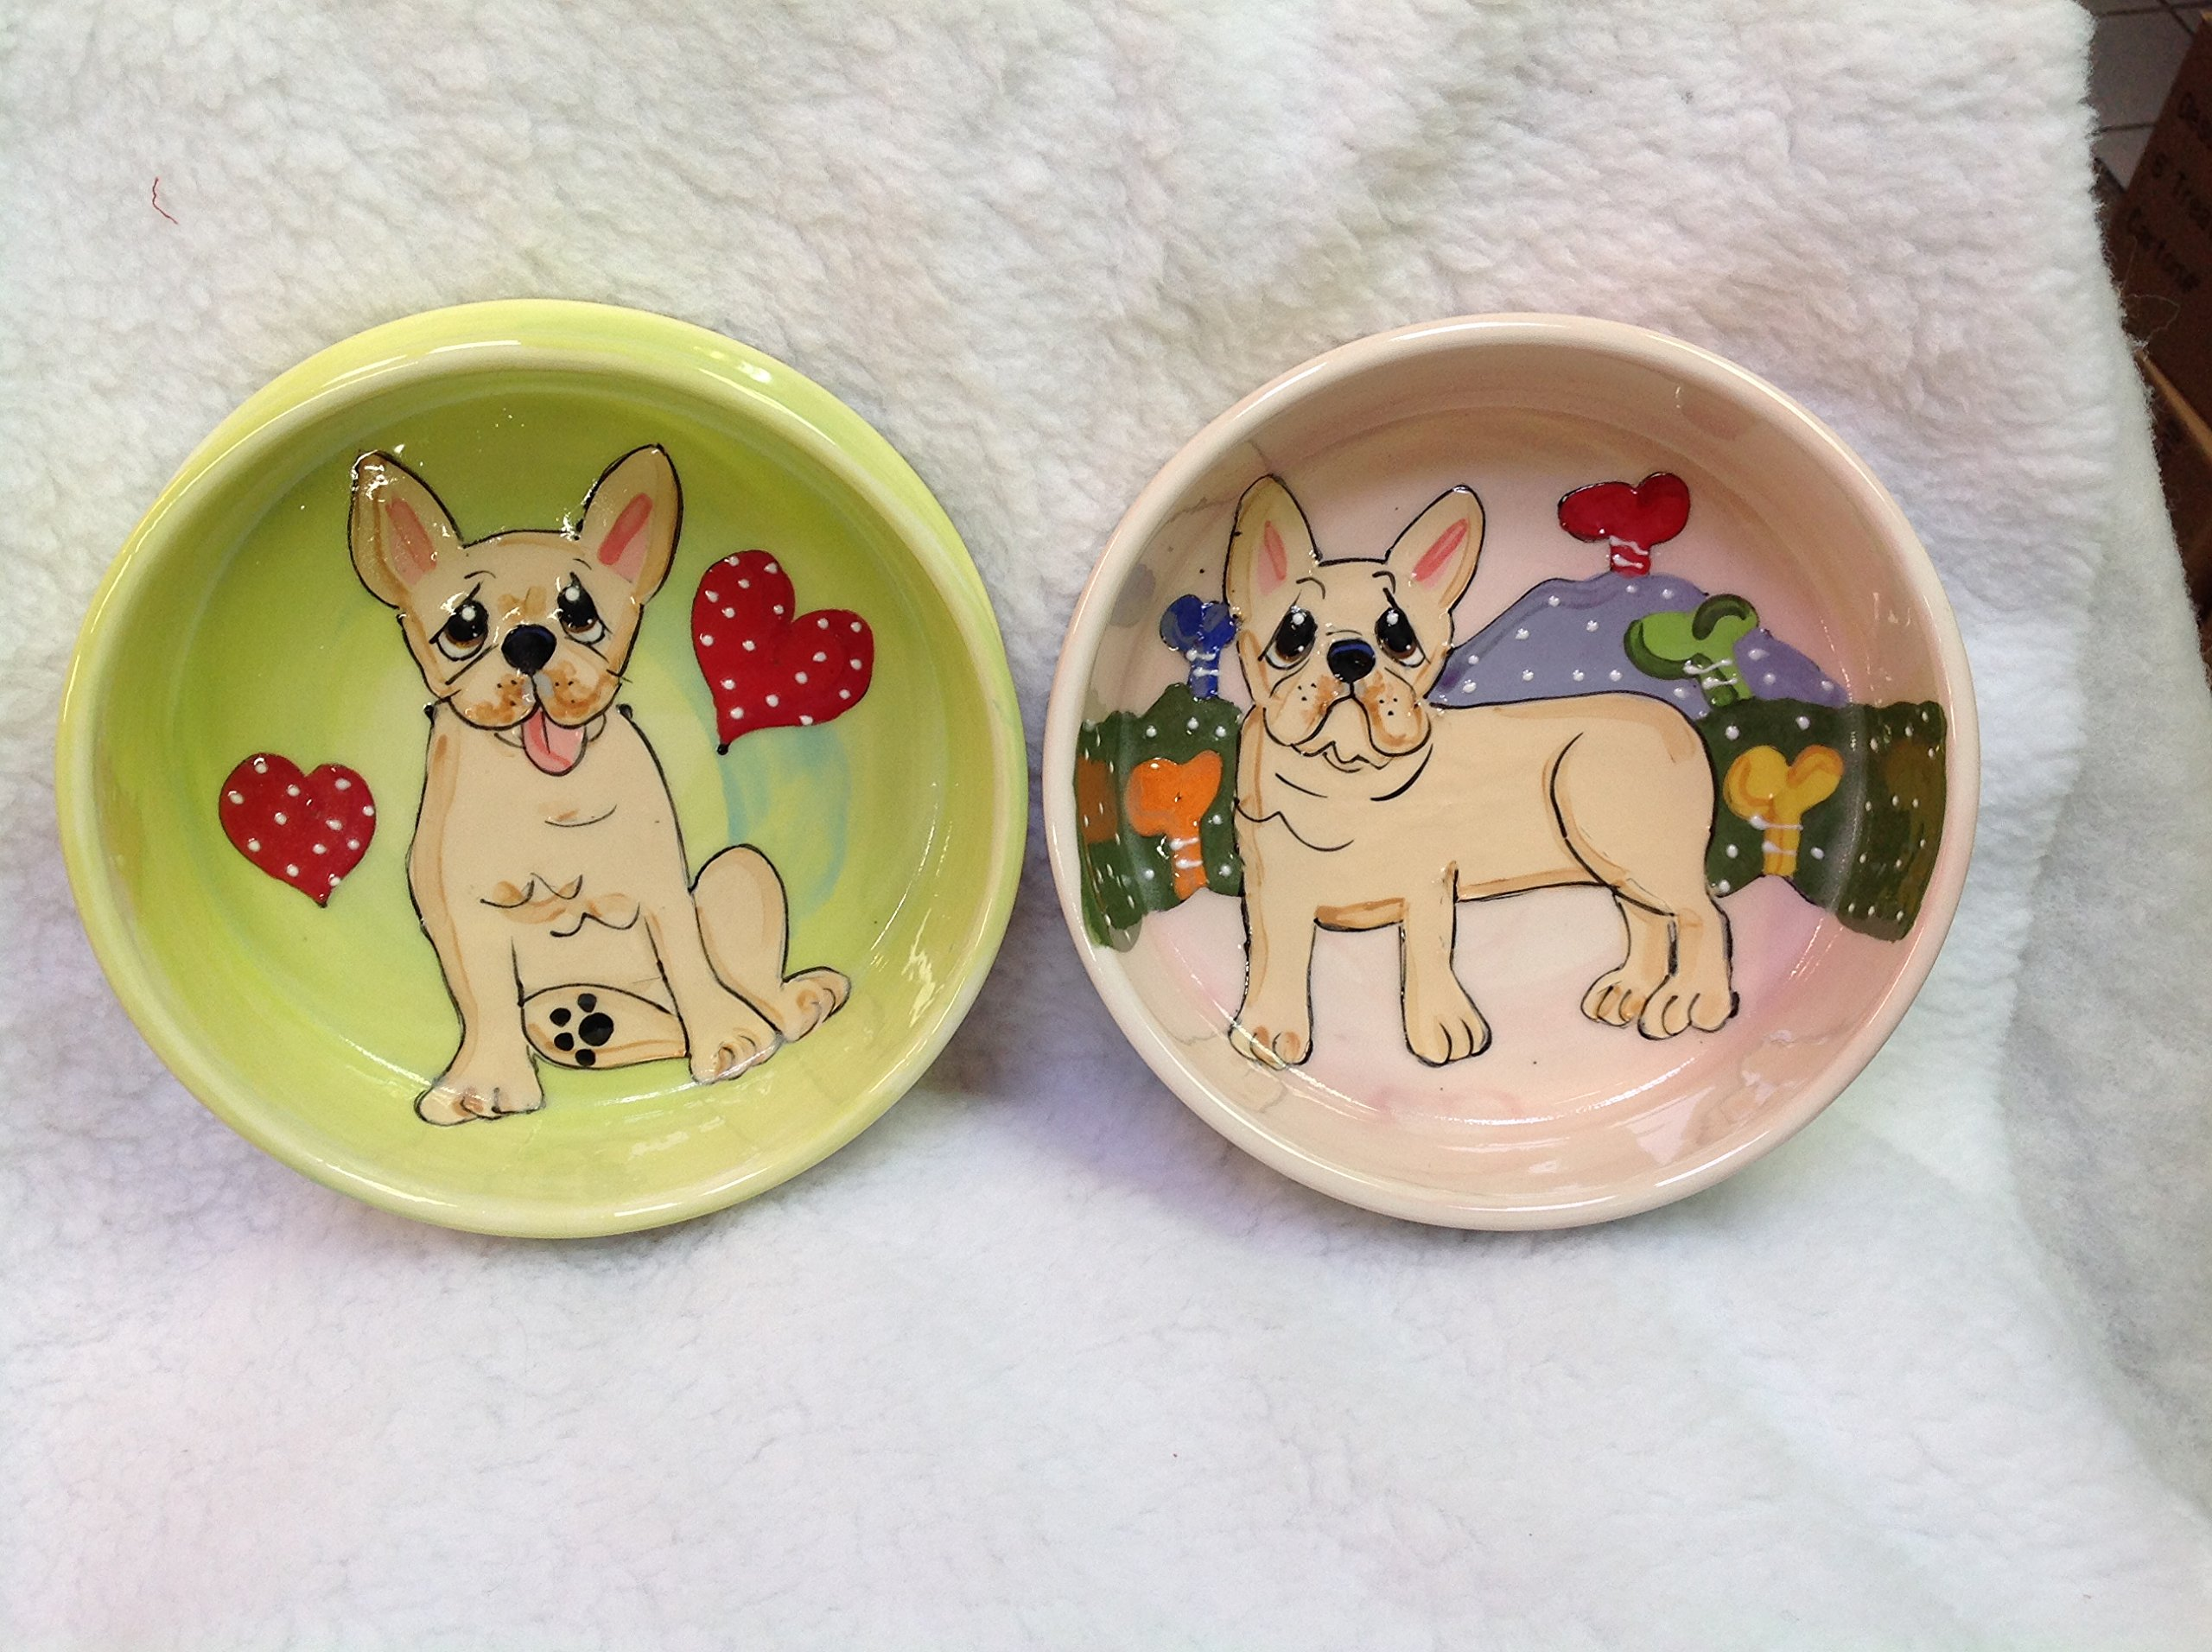 French Bulldog 8''/6'' Pet Bowls for Food/Water, Personalized at no Charge. Signed by Artist, Debby Carman.